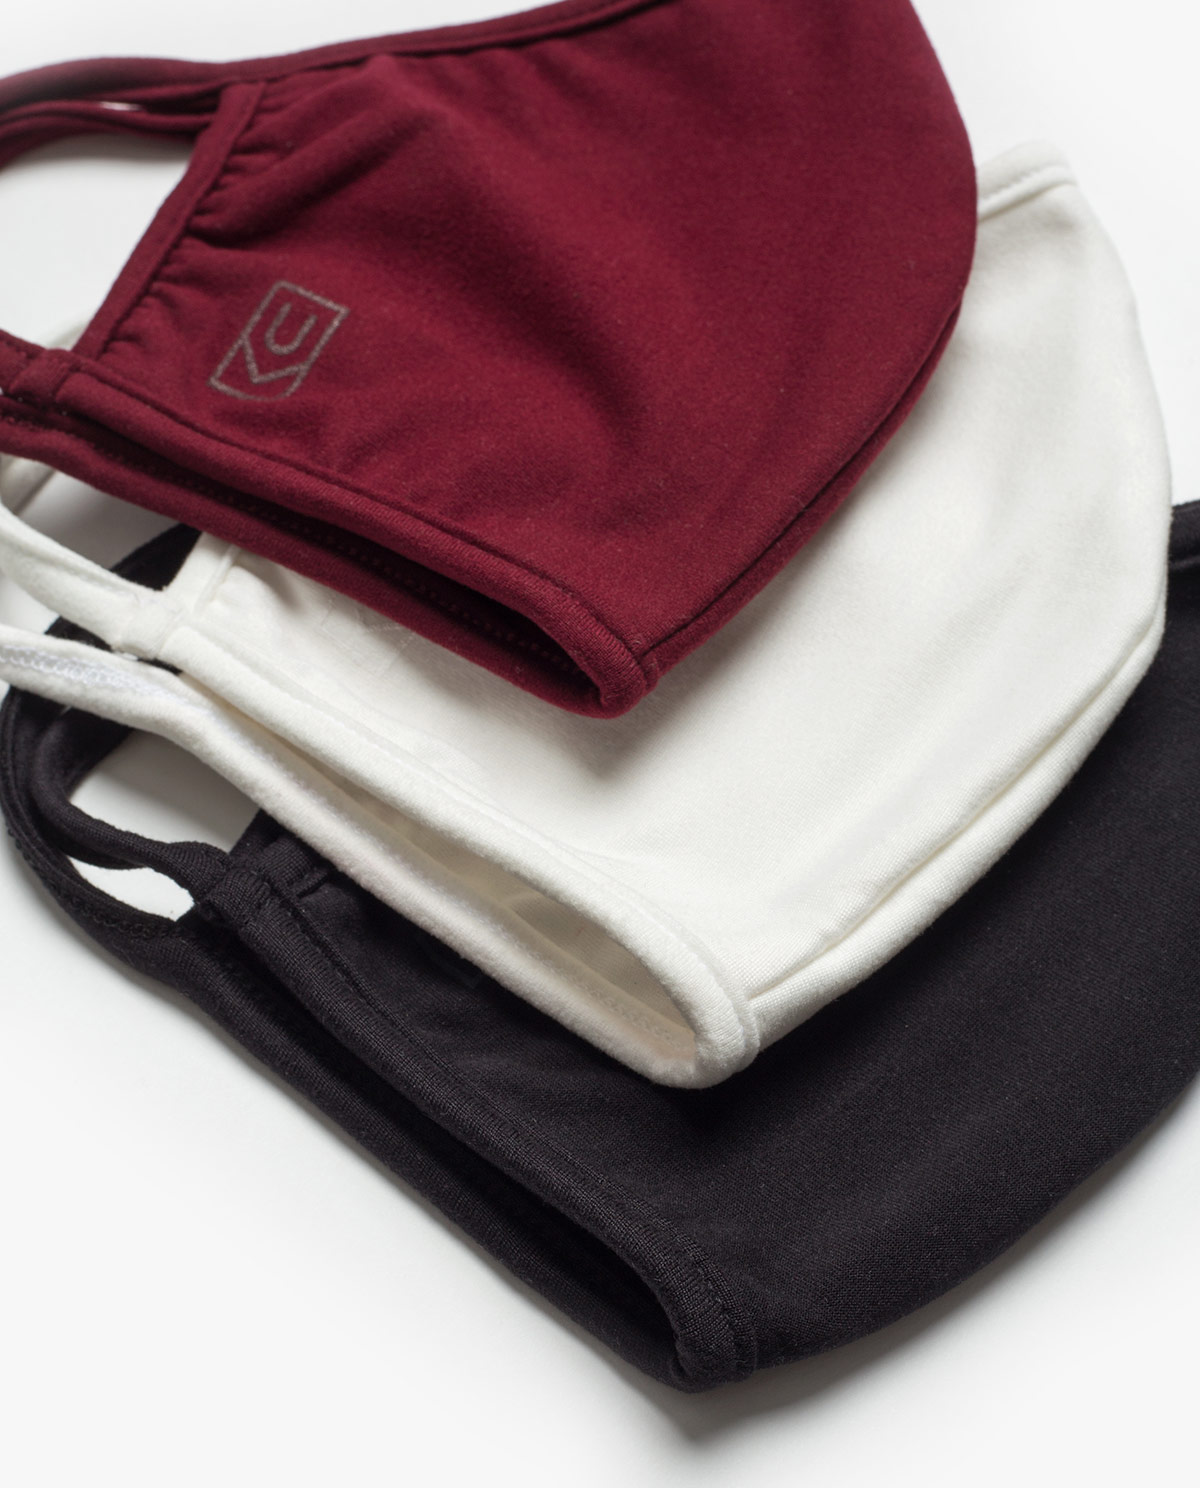 ugmonk-face-mask-two-new-colors-detail